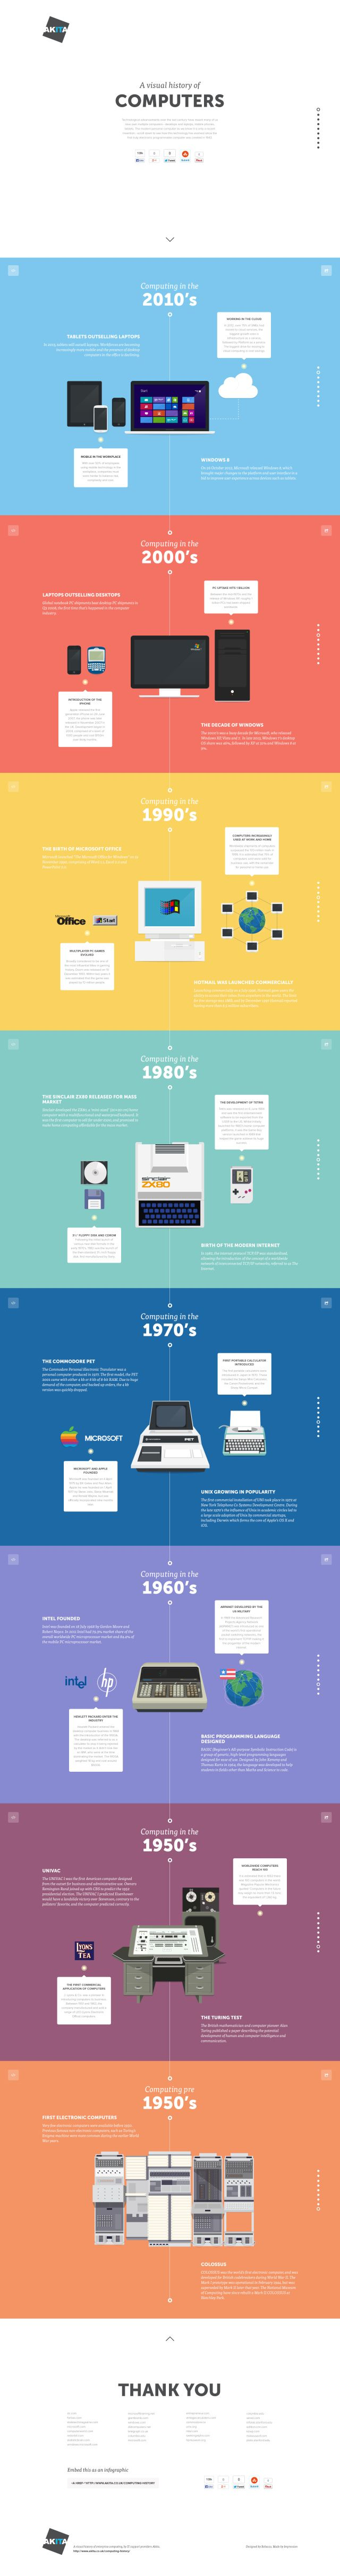 A visual history of computers #infografia #infographic